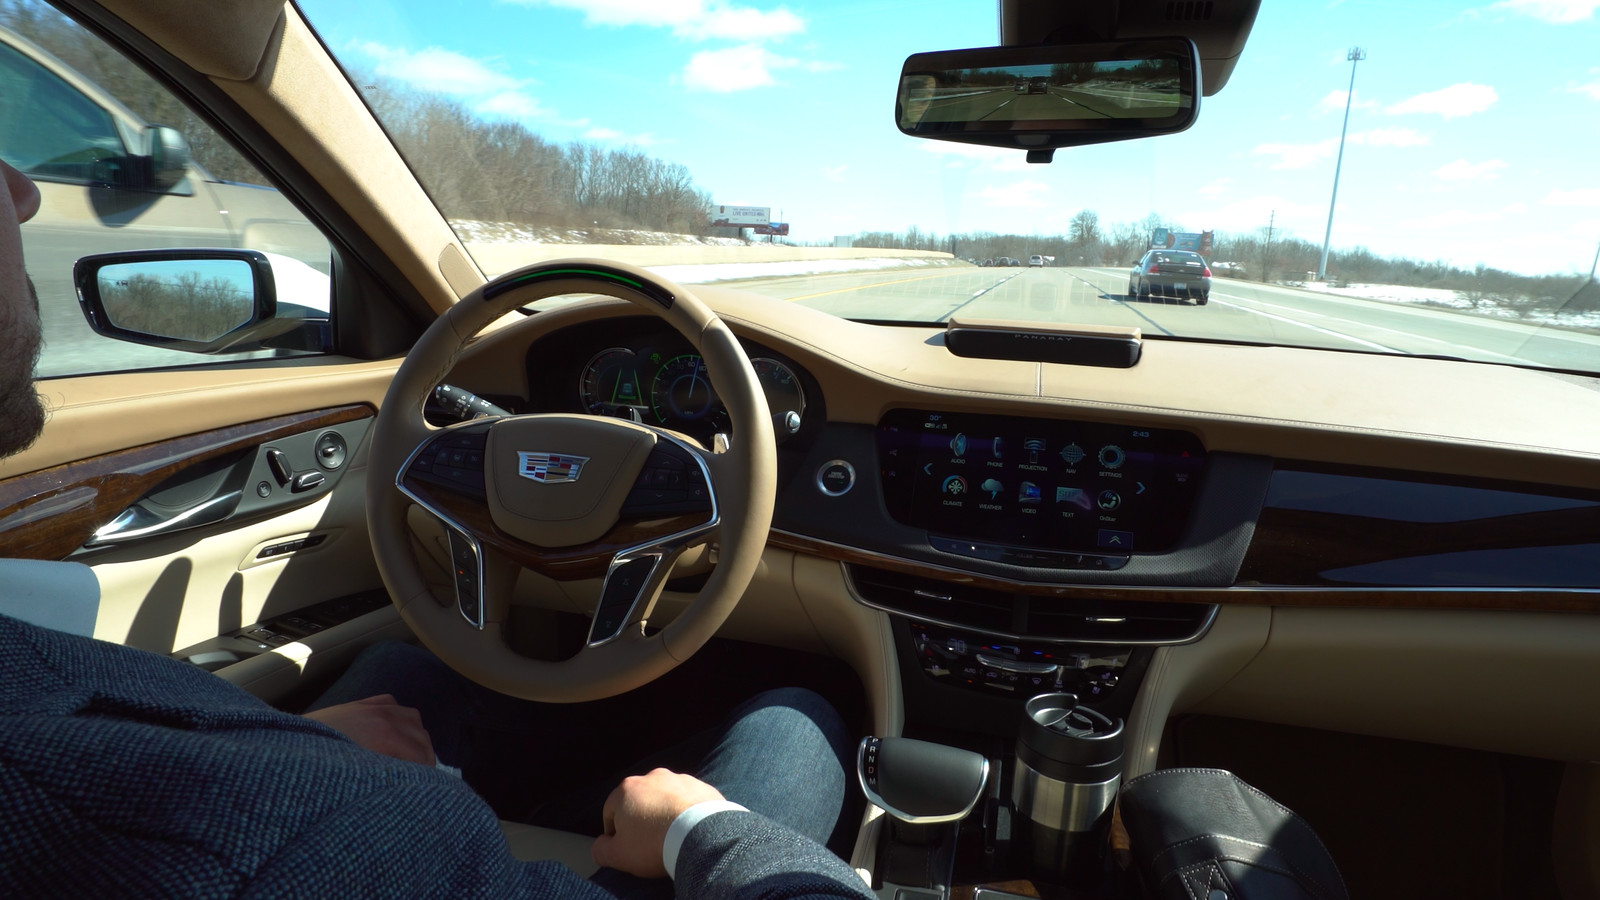 Cadillac Takes Aim at Tesla's Autopilot with 'hands-free' Super Cruise Technology, Available this Fall